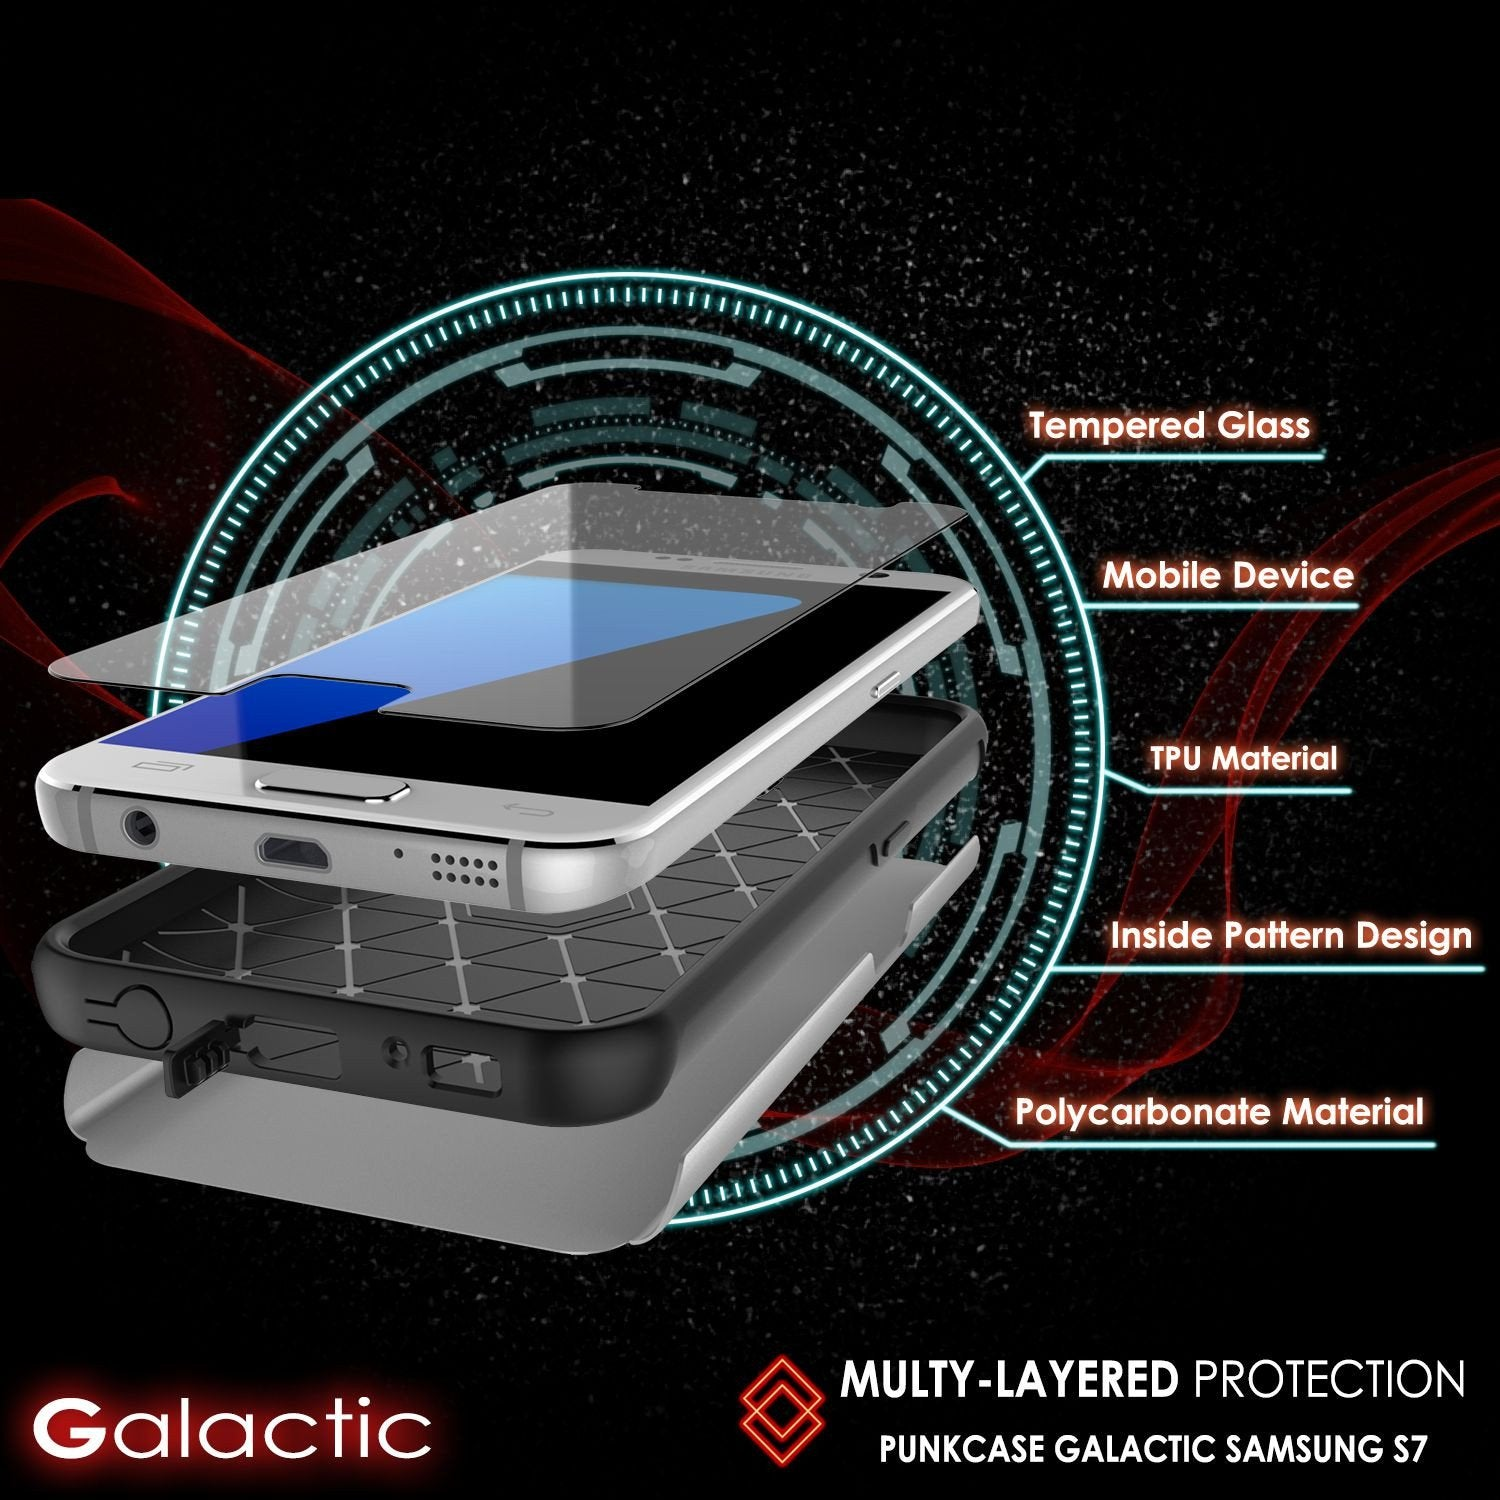 Galaxy s7 Case PunkCase Galactic Silver Slim Protective Armor Soft Cover Case w/ Tempered Glass